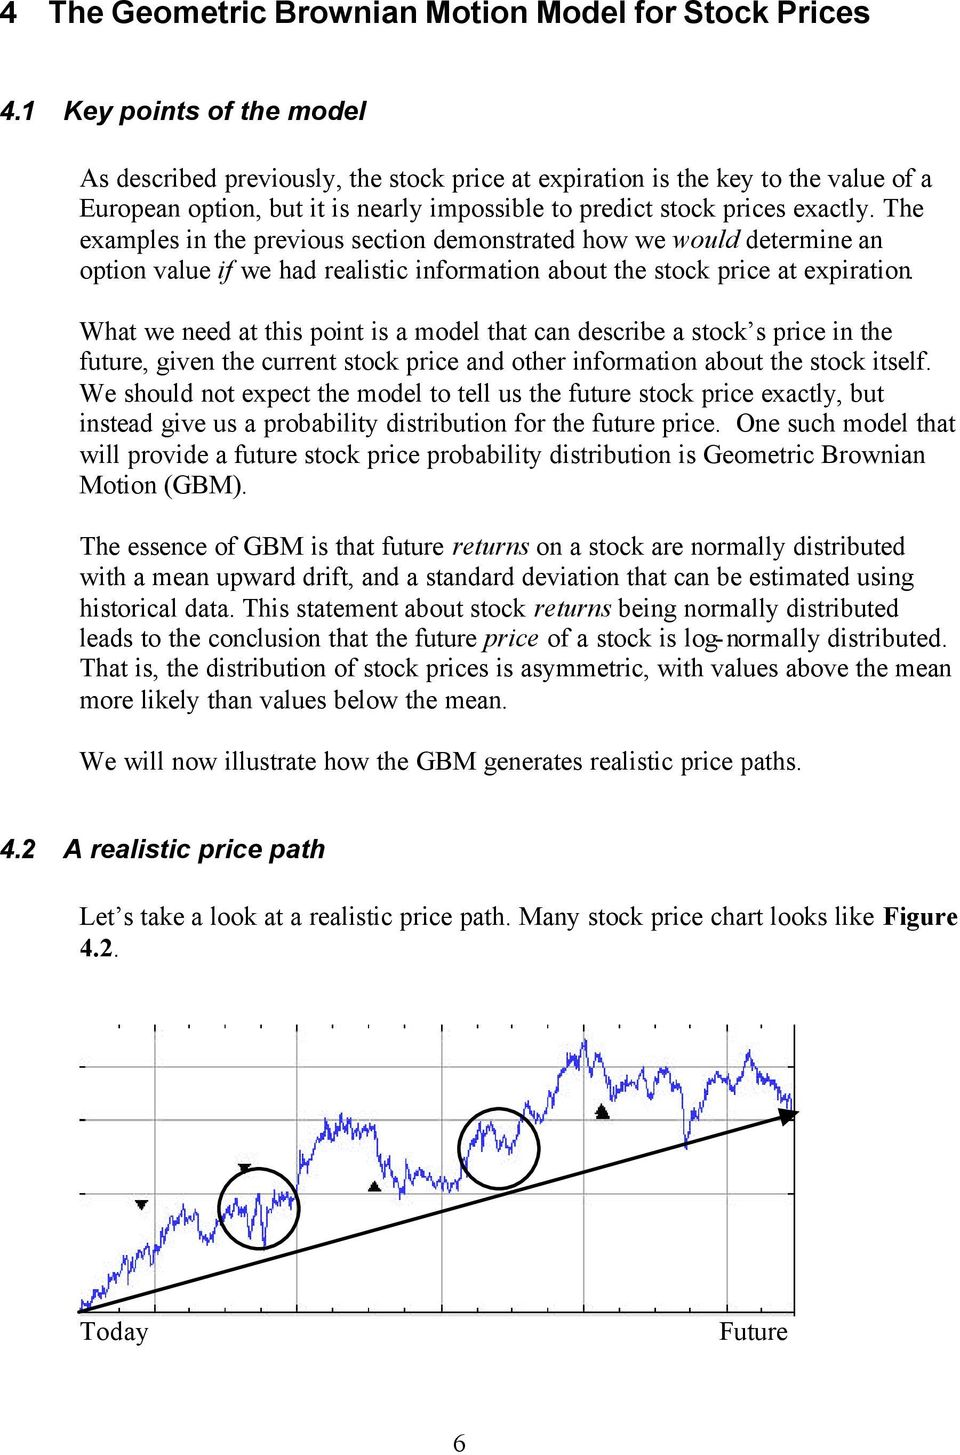 The examples in the previous section demonstrated how we would determine an option value if we had realistic information about the stock price at expiration.